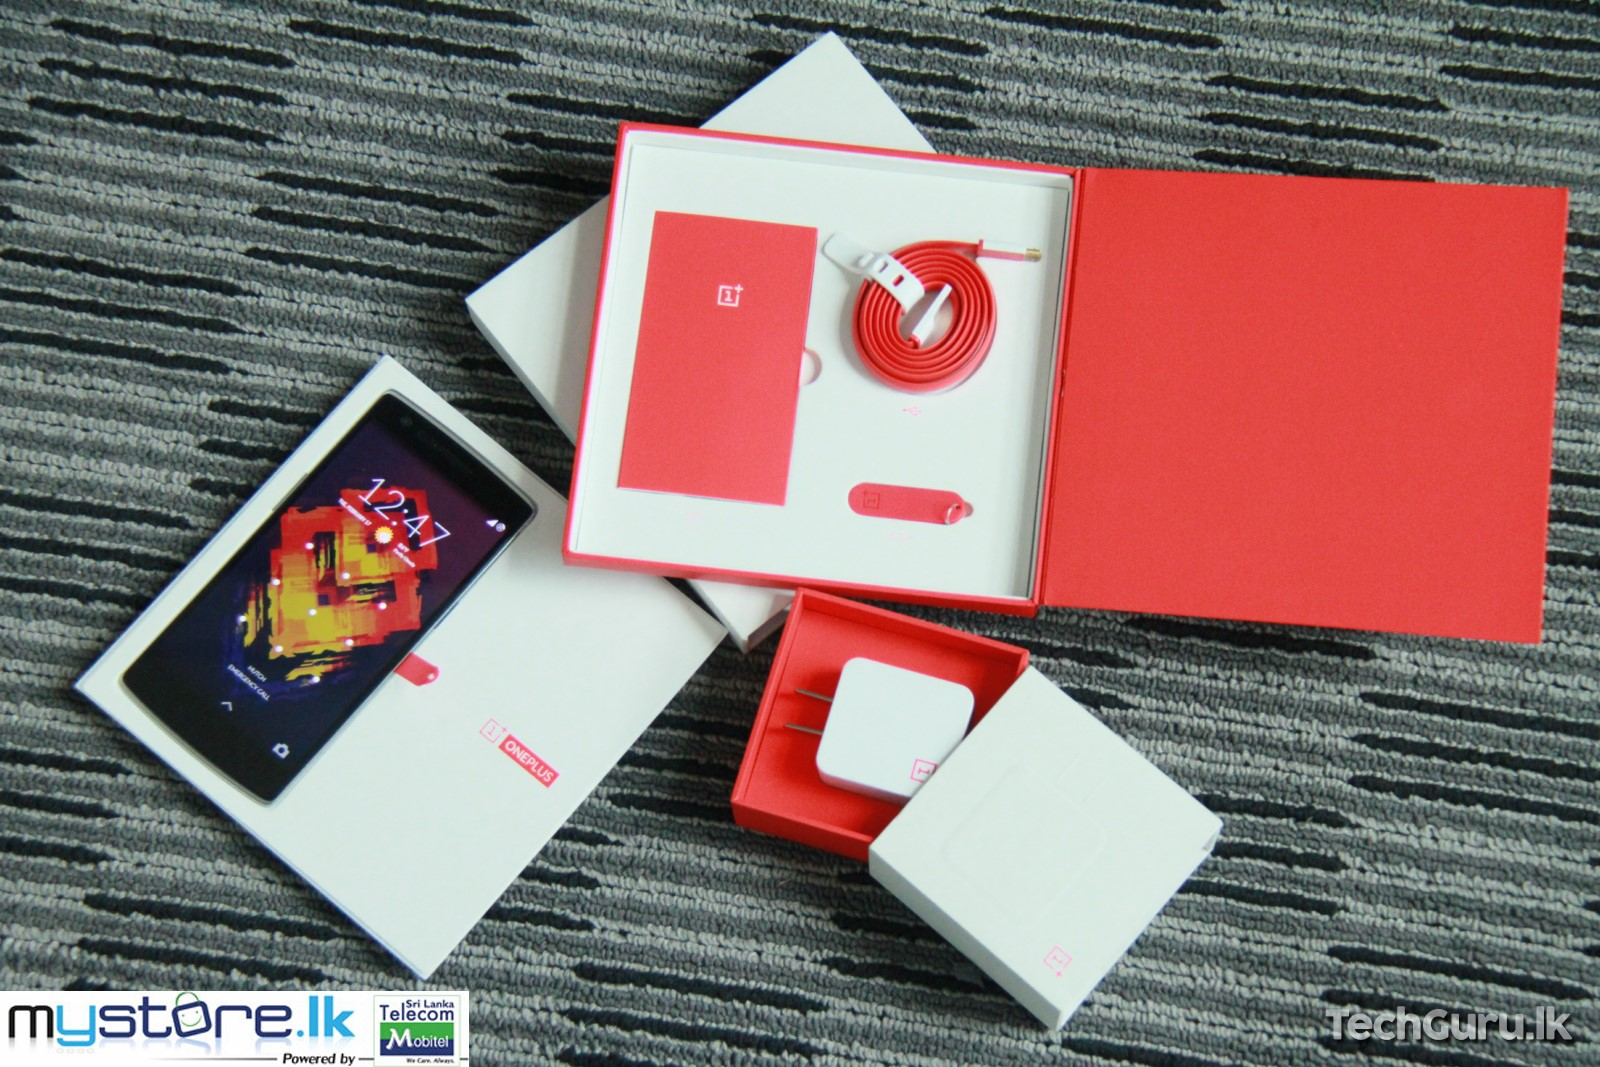 oneplus-one-review-sinhala-techguru-2